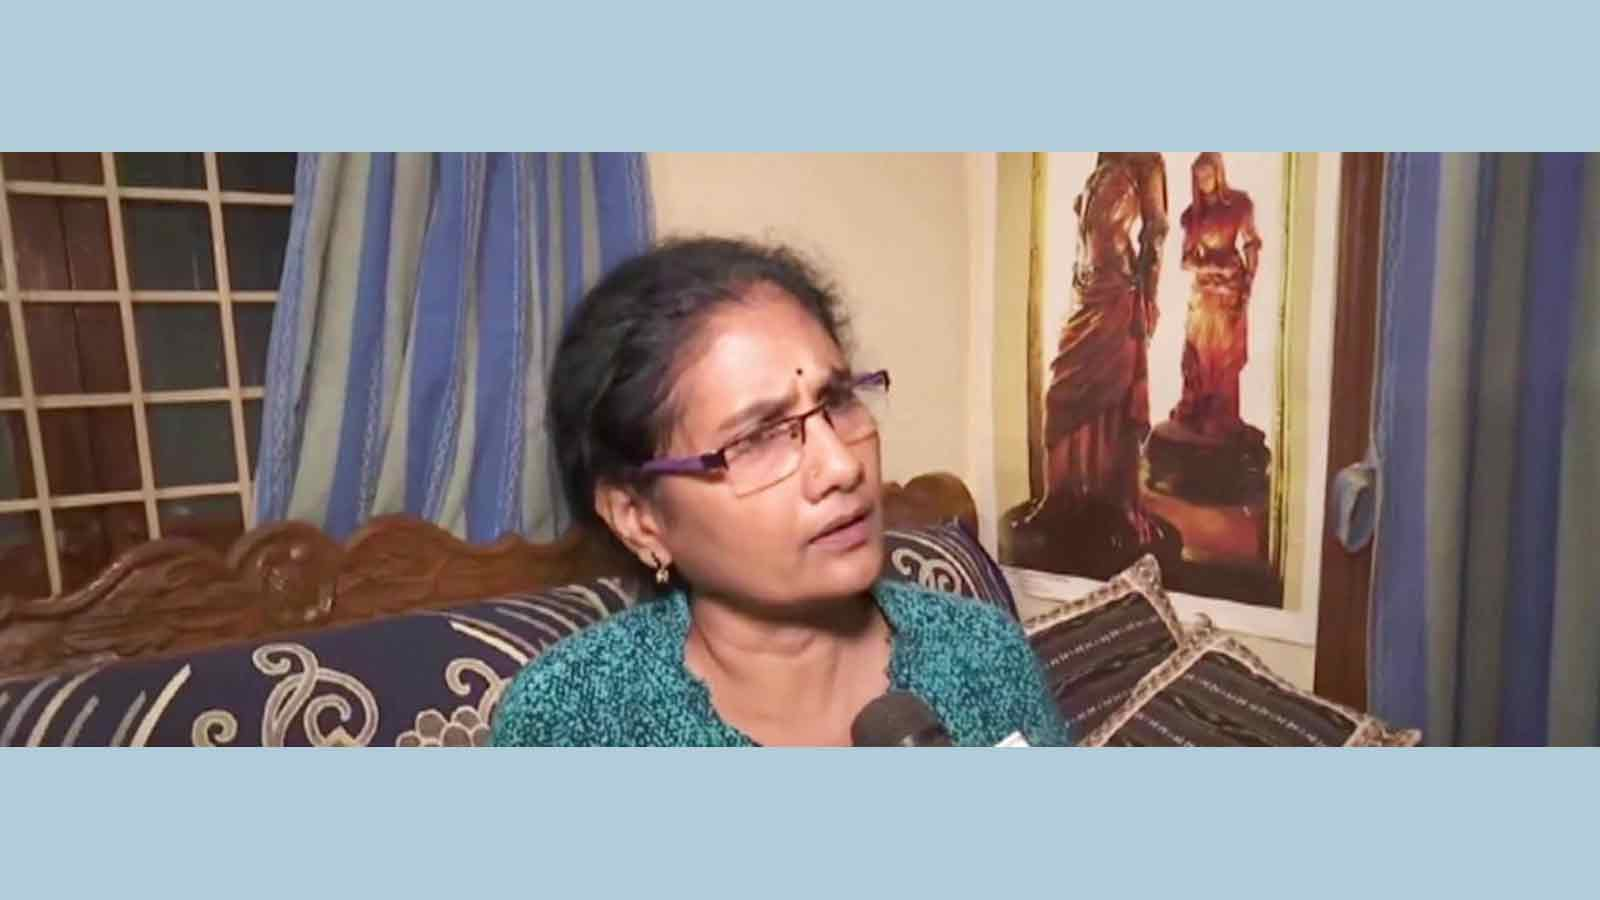 encounter-doesnt-bring-justice-to-victim-nor-bring-security-to-women-human-rights-activist